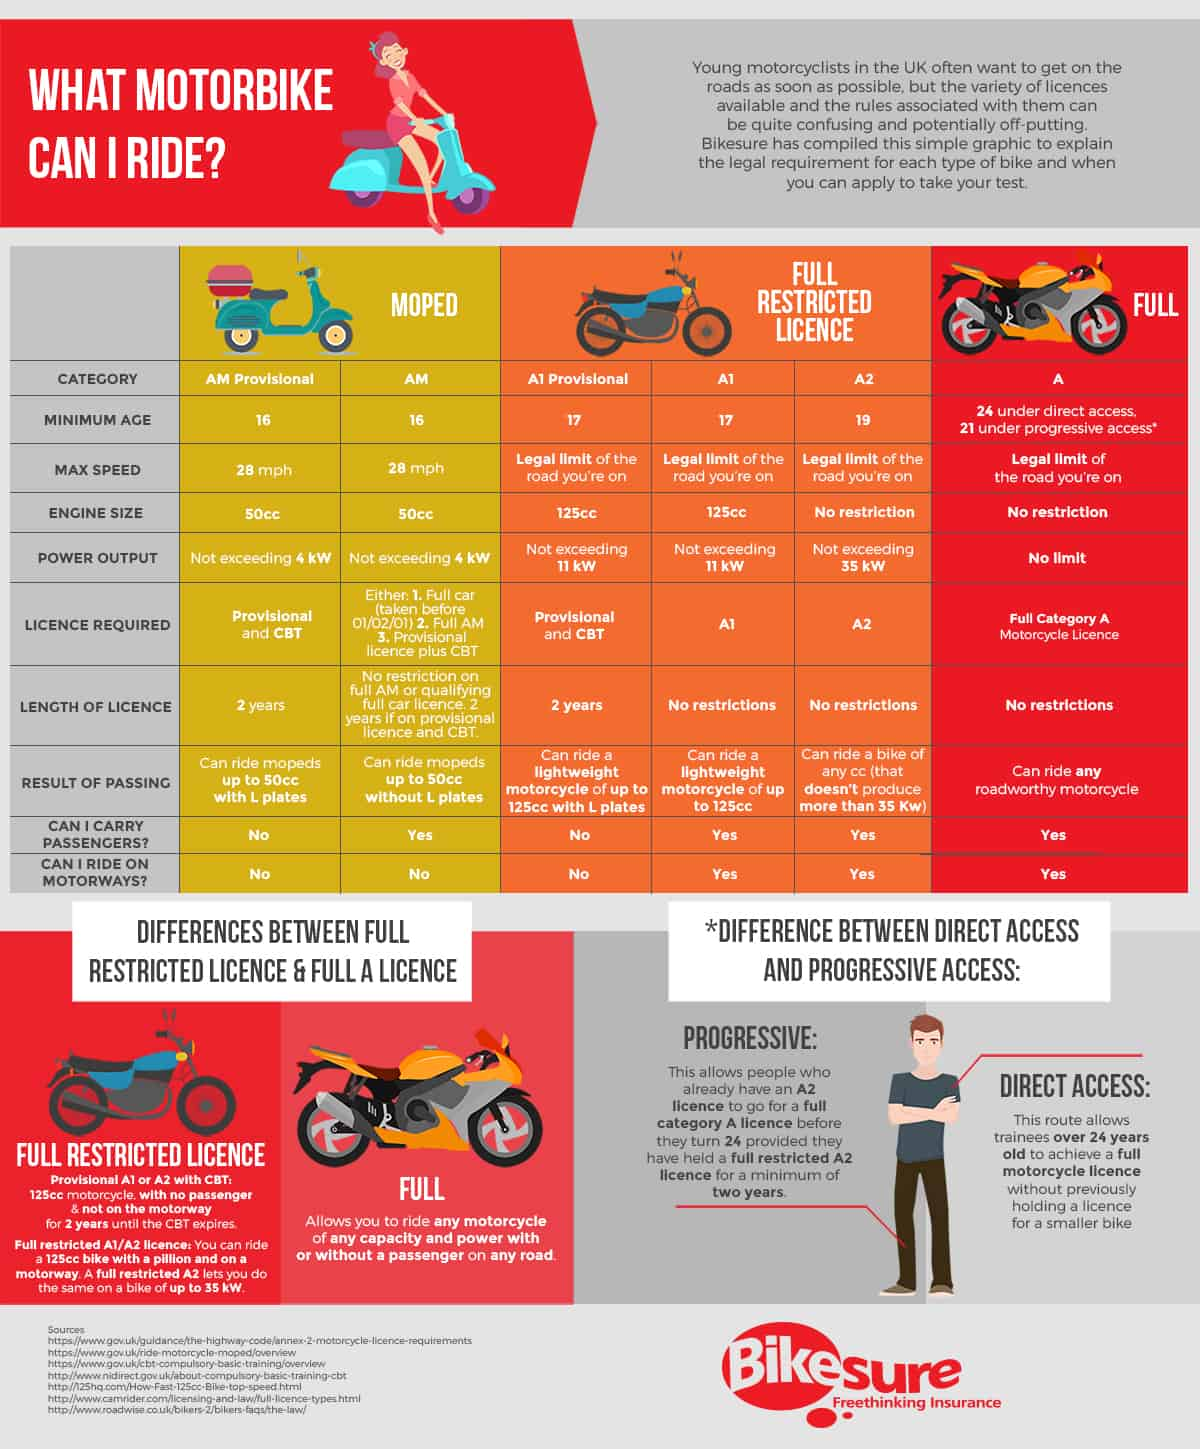 Infographic produced by Bikesure